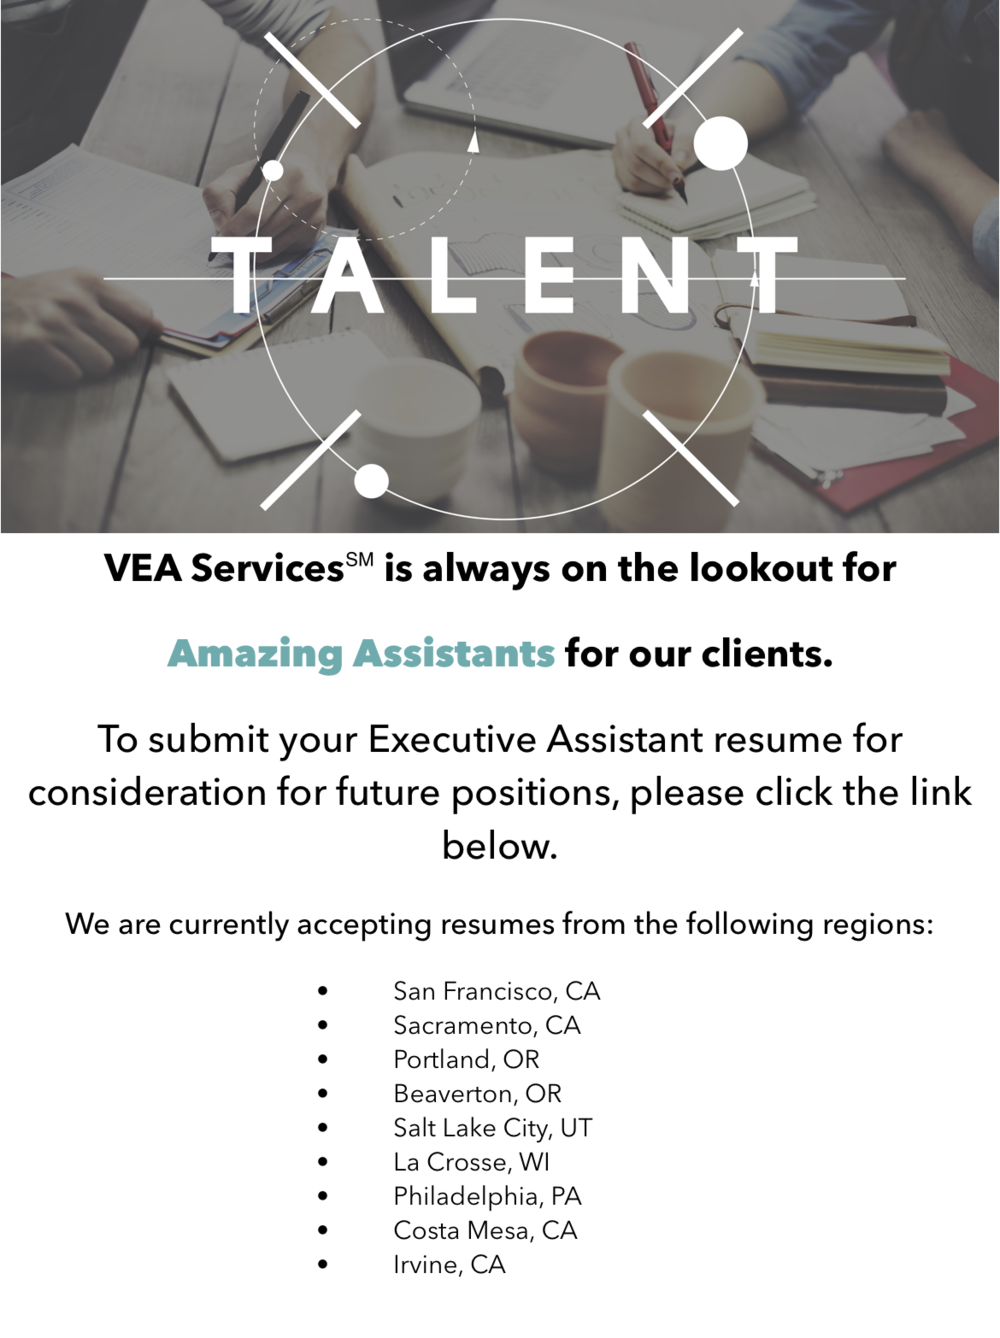 VEA Services looks for Amazing Assistants for their clients in the following regions, San Francisco, CA, Sacramento, CA, Salt Lake City, UT, Beaverton, OR, Portland, OR, LaCrosse, WI, Philadelphia, PA, Southern California